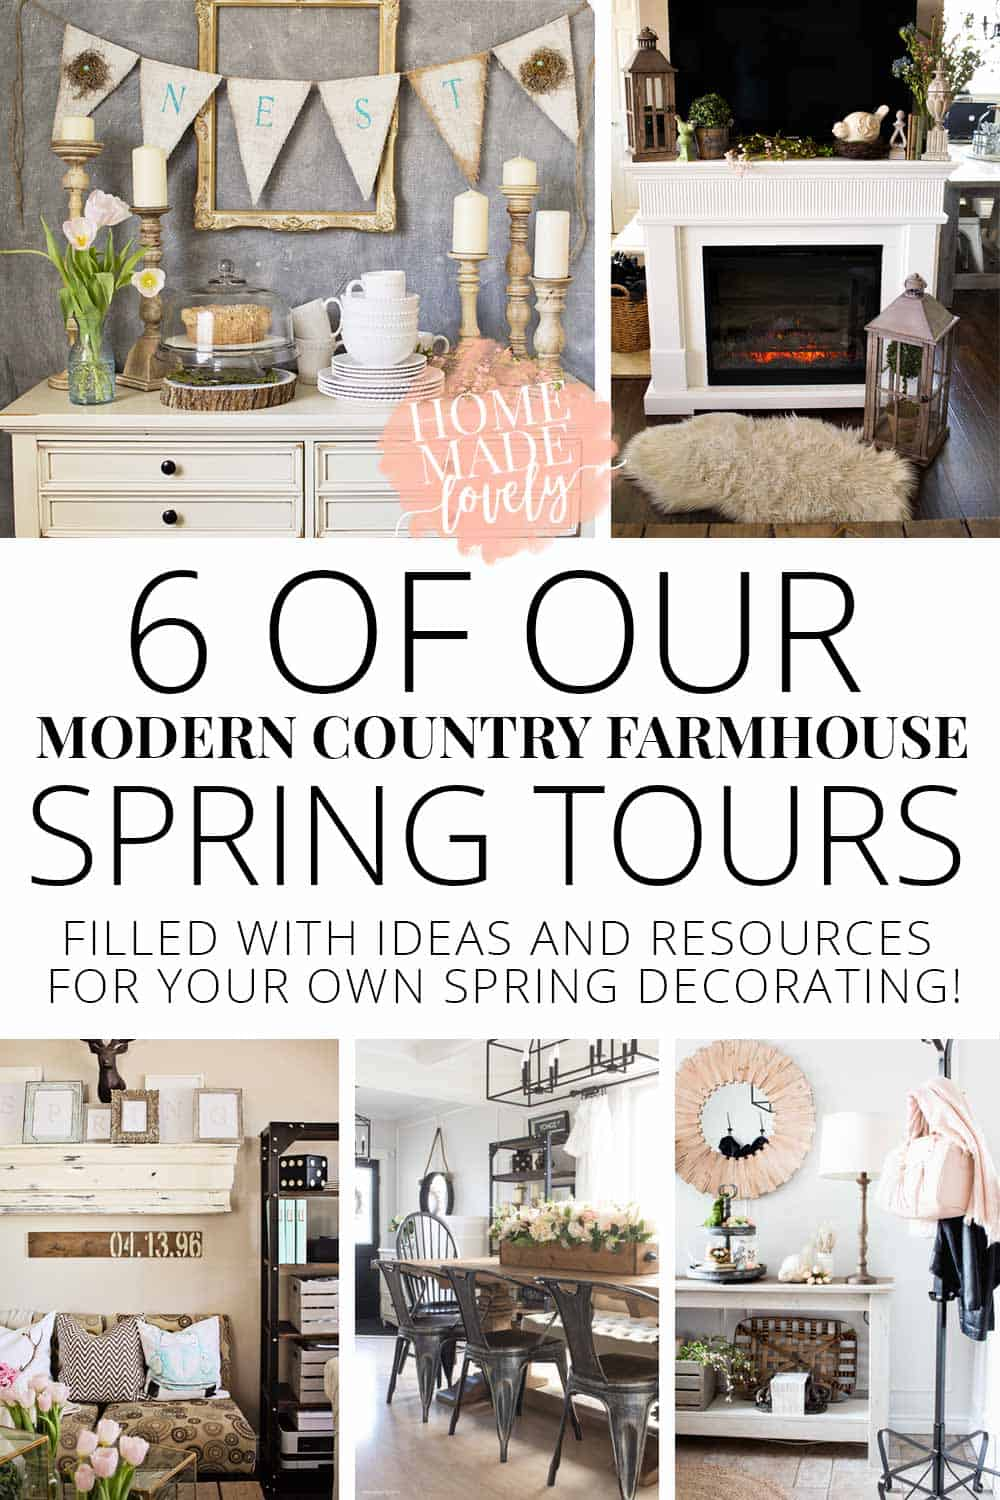 Do you love modern country or farmhouse style? Not sure how to decorate in those styles for Spring? Here's 6 of the best of our very own modern country farmhouse Spring tours filled with lots of visual ideas you can use in your own home this season!